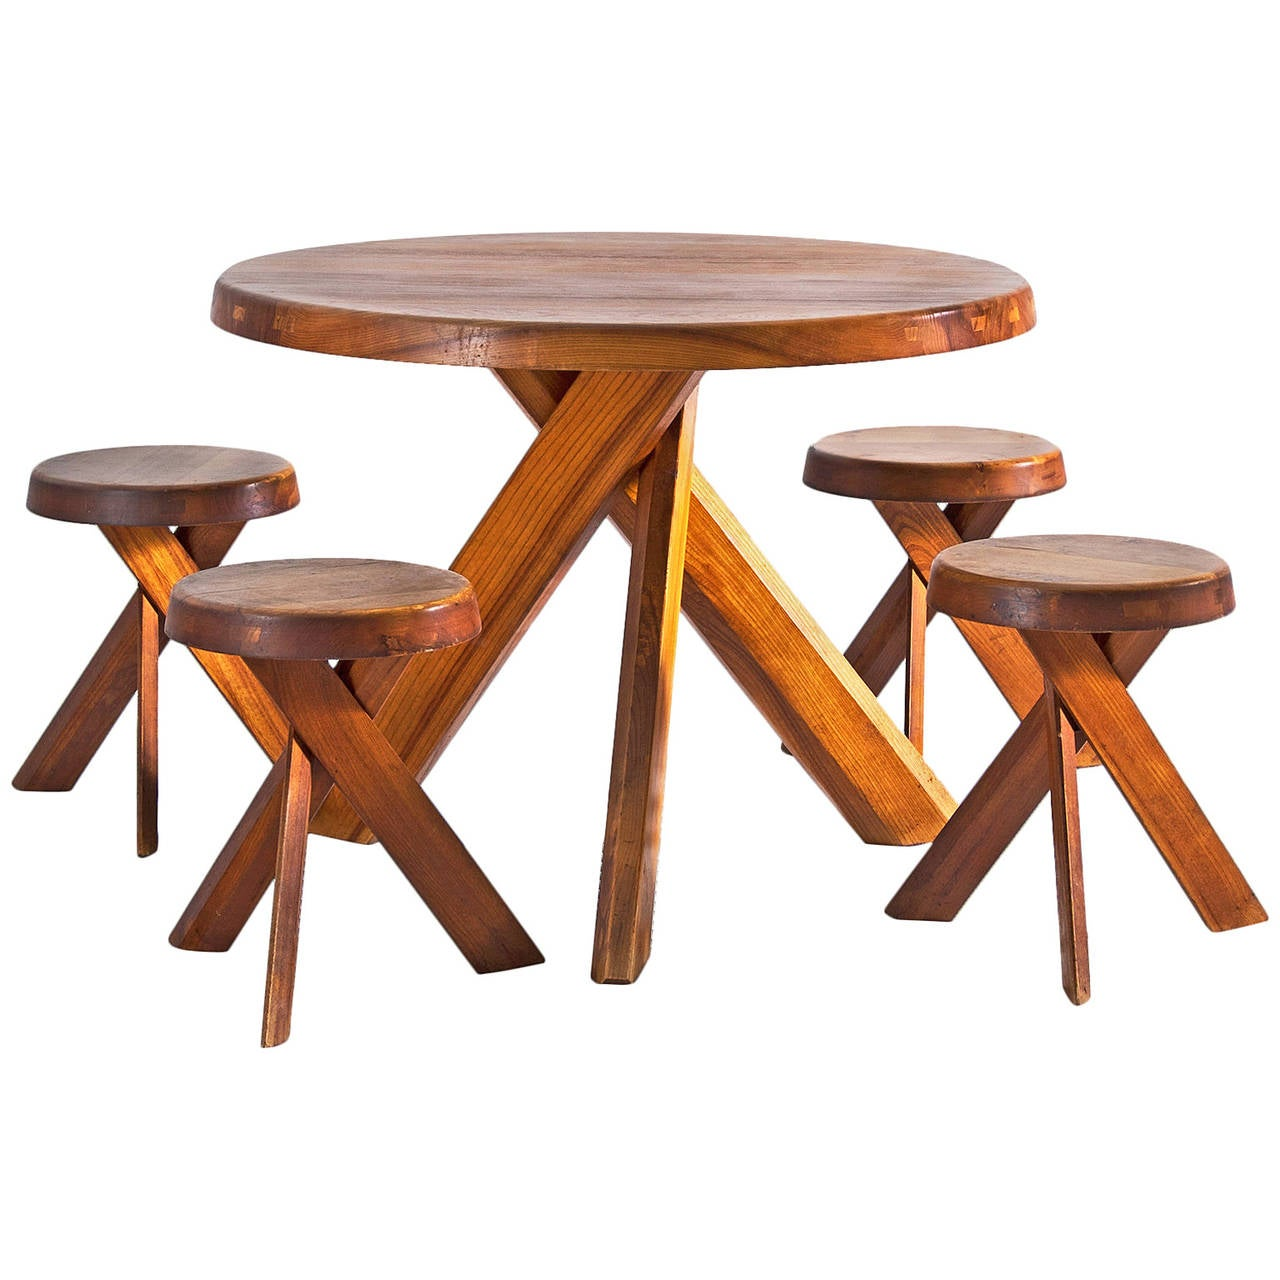 pierre chapo round table and four stools for sale at 1stdibs. Black Bedroom Furniture Sets. Home Design Ideas